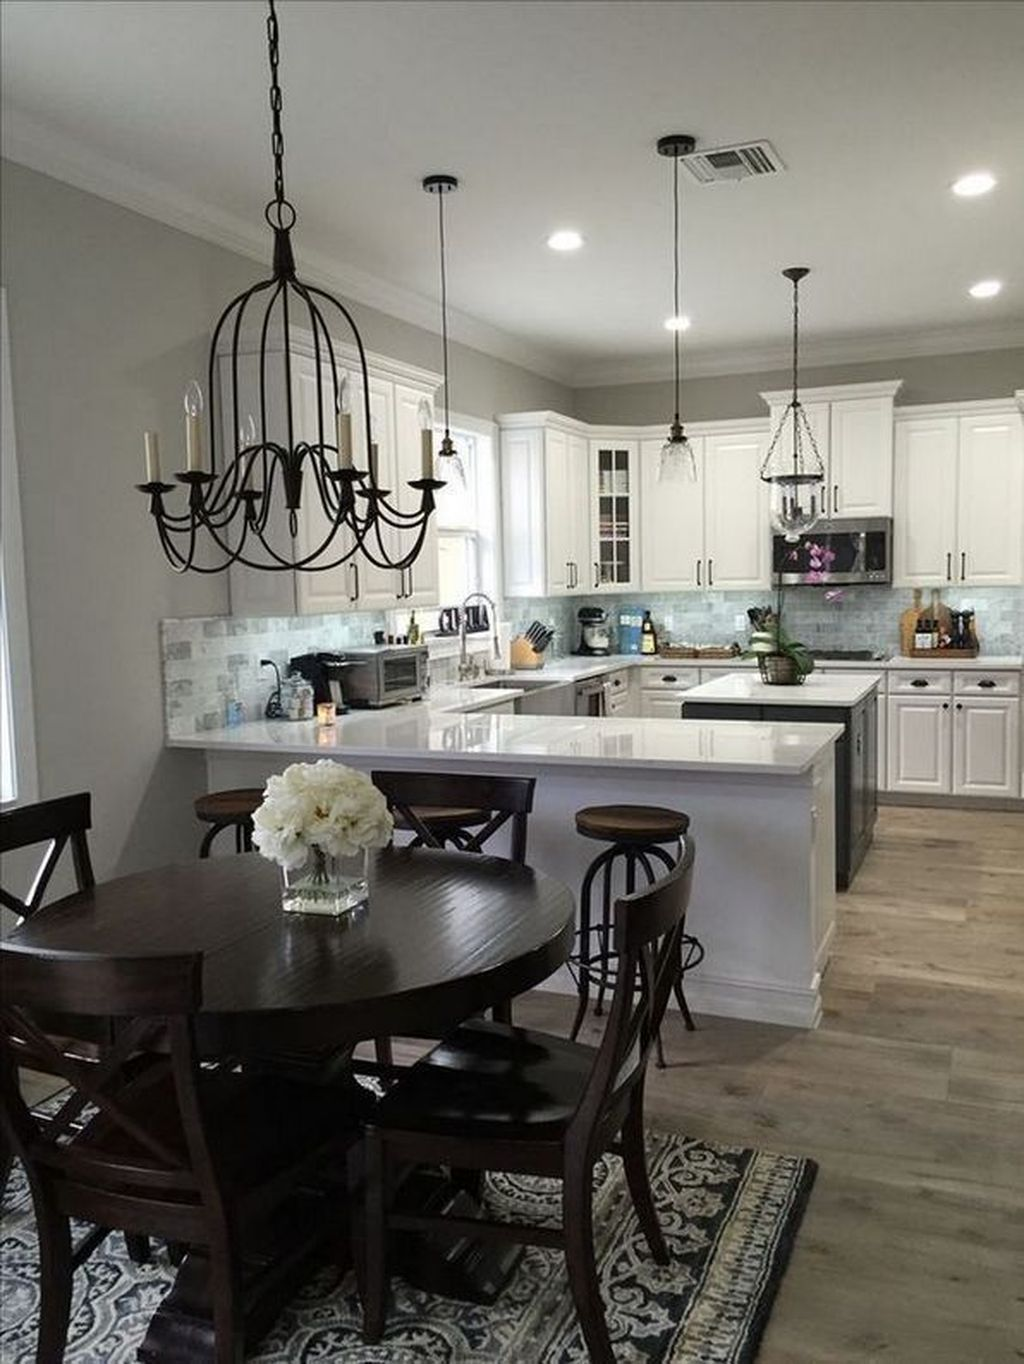 33 Inspiring Dining Room Makeover Ideas Kitchen Dining Room Combo Layout Kitchen Dining Room Combo Kitchen Remodel Small